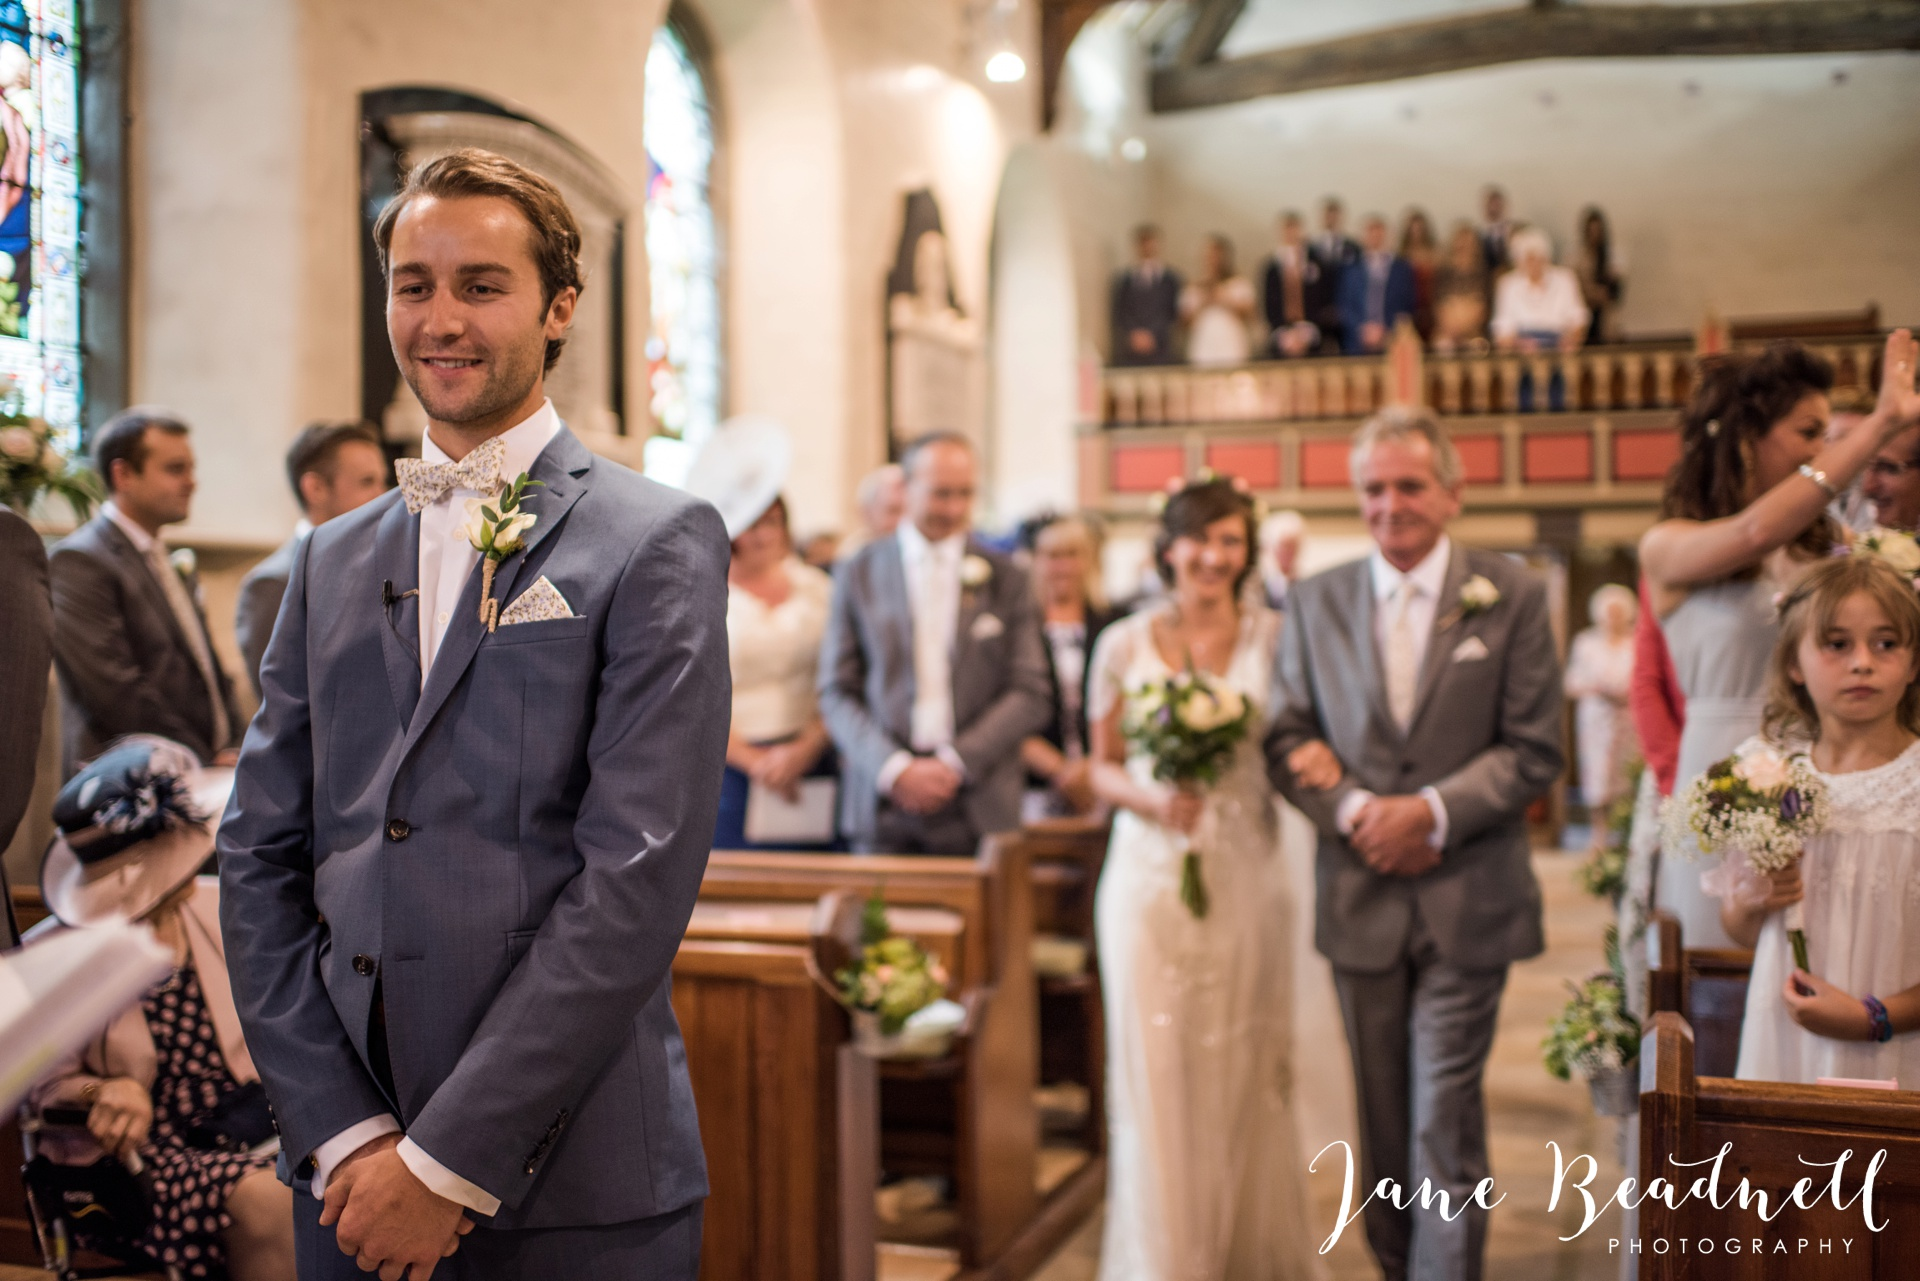 Jane Beadnell fine art wedding photographer Leeds_0038